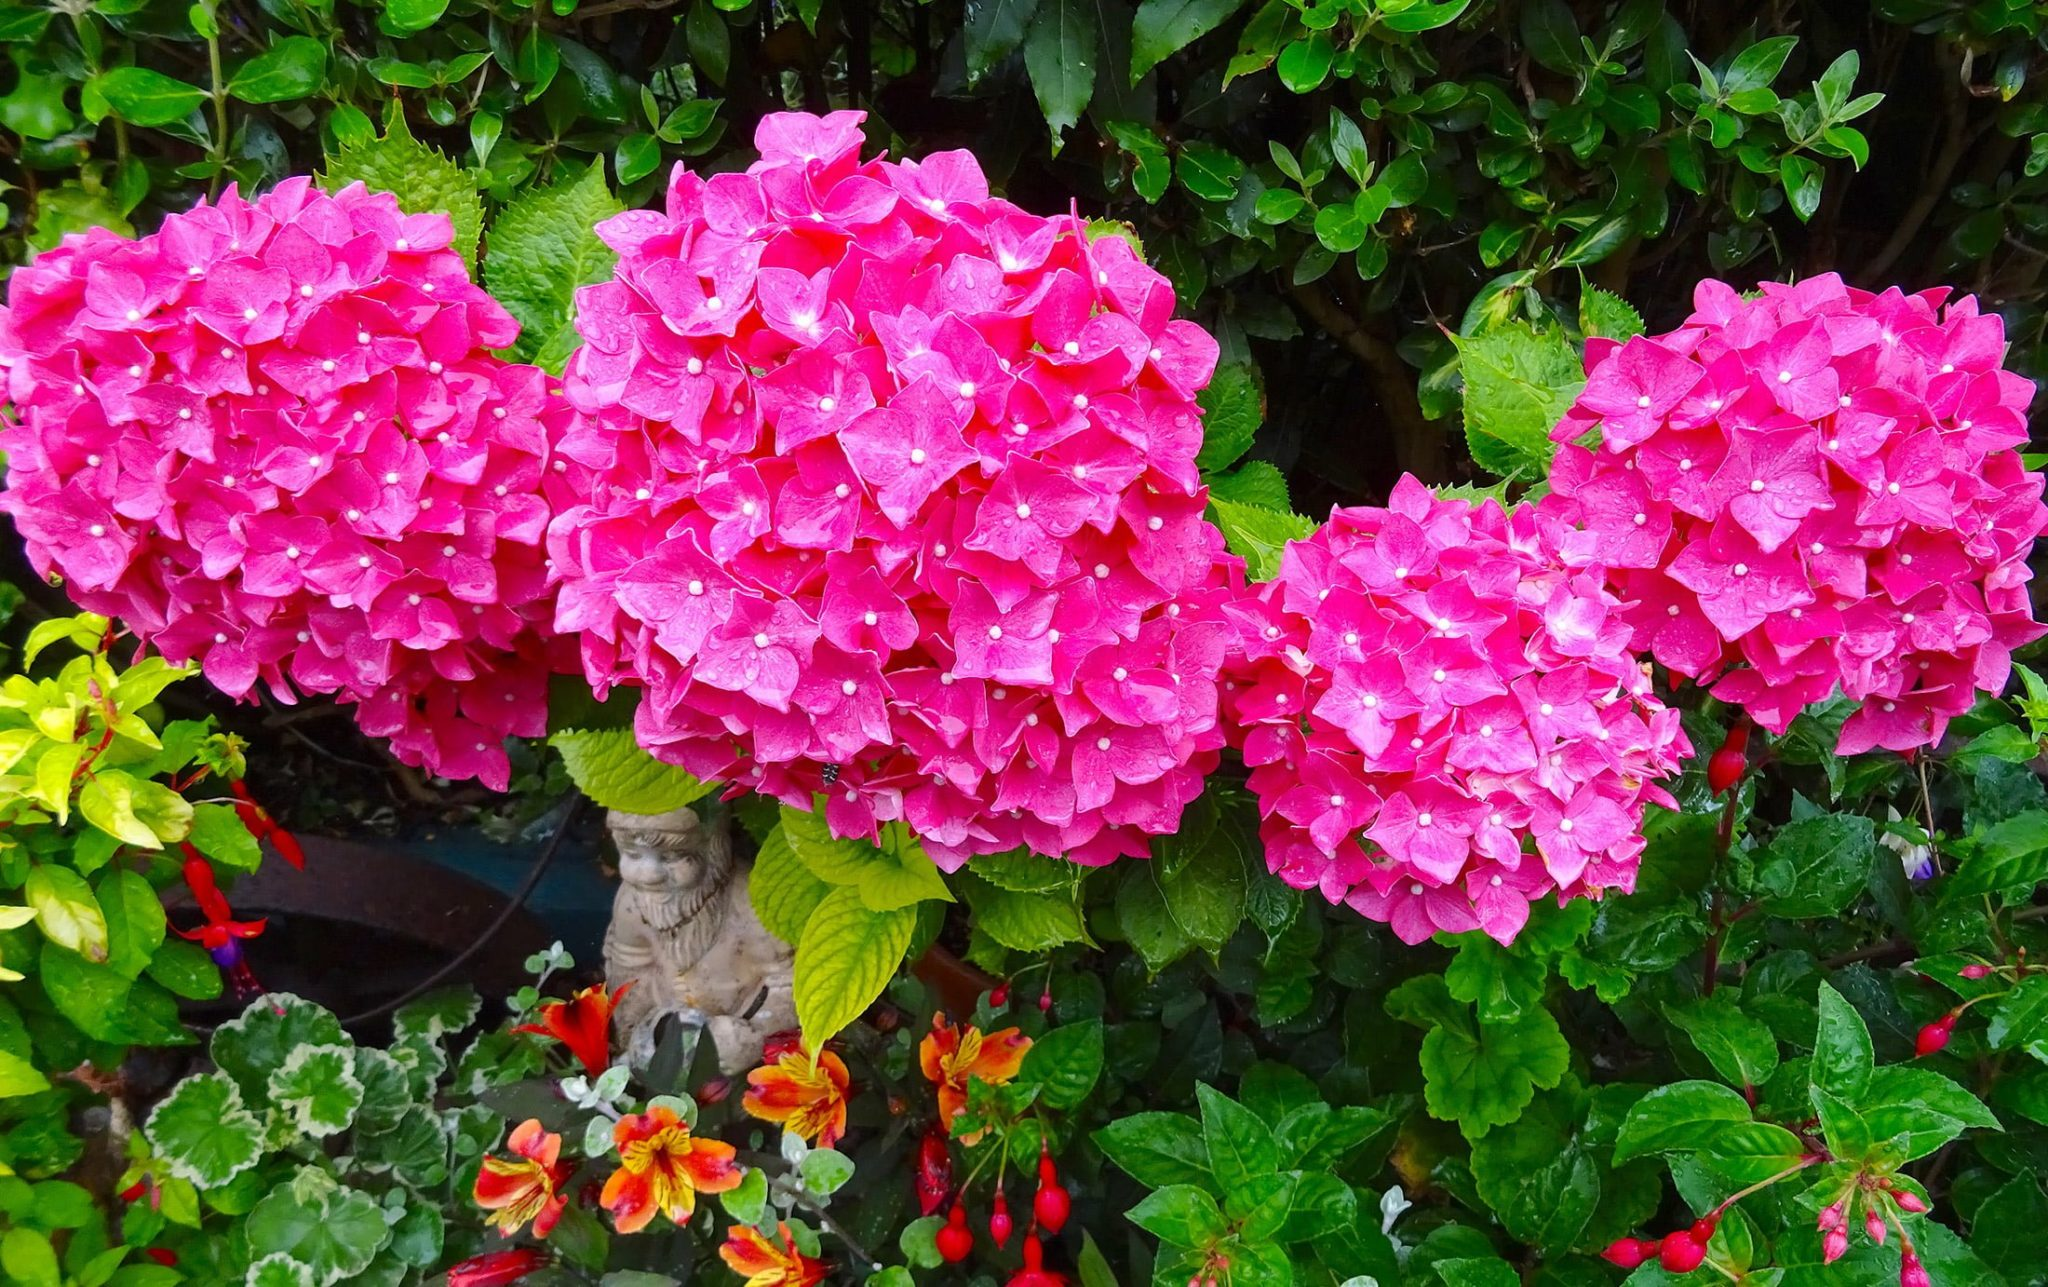 pink flowers of hydrangea Red Baron